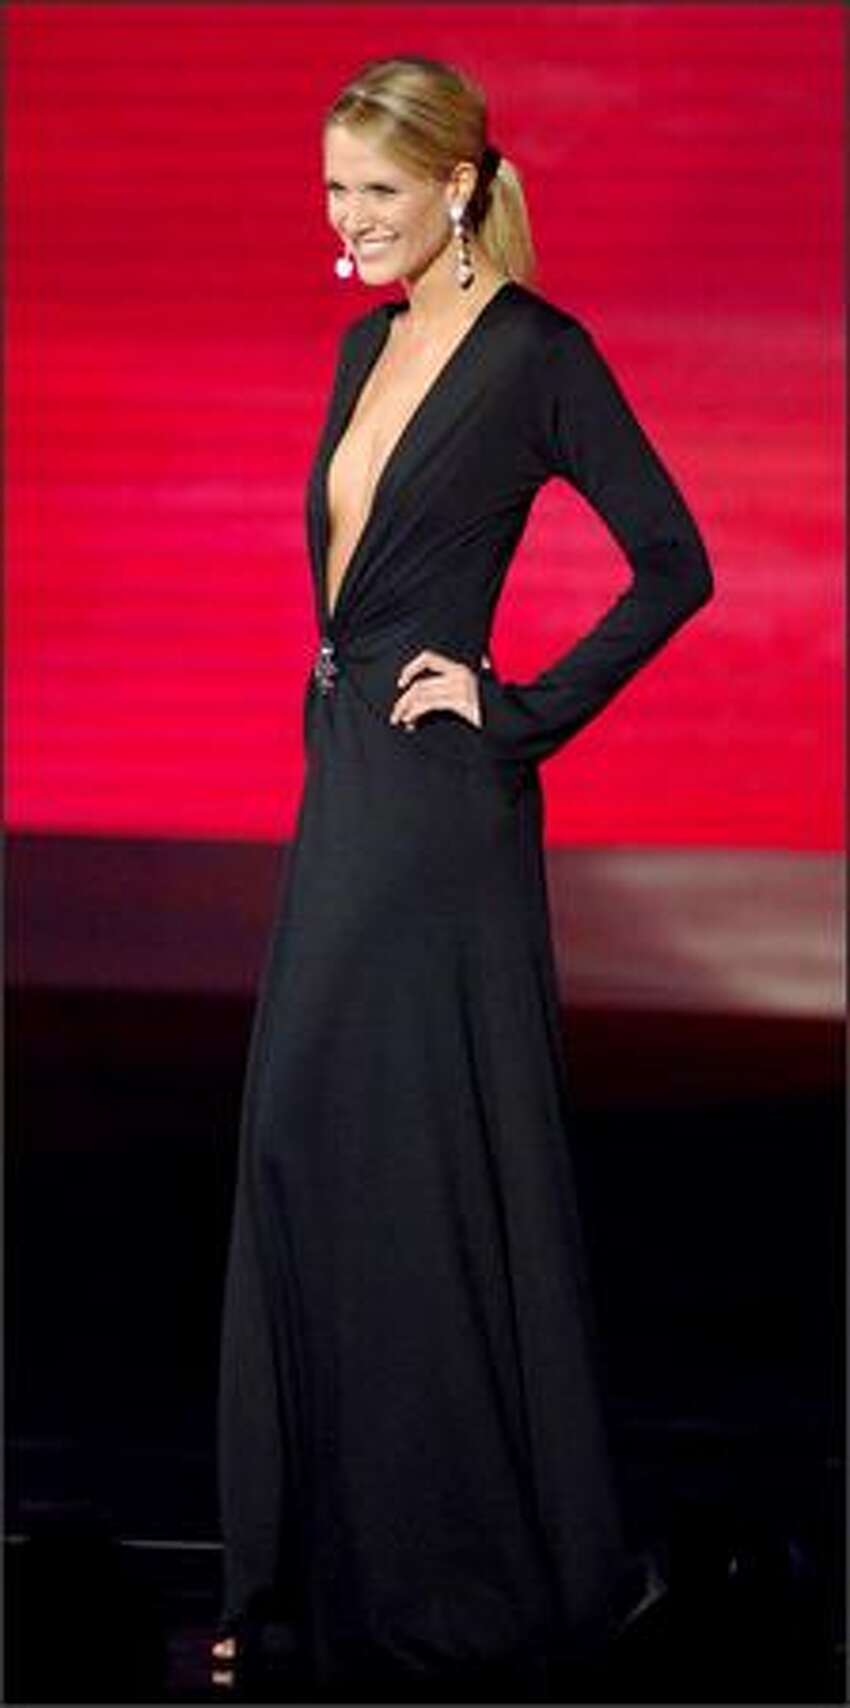 Stacy Offenberger, Miss Ohio, competes in the evening gown portion of the Miss USA competition at the 1st Mariner Arena in Baltimore.